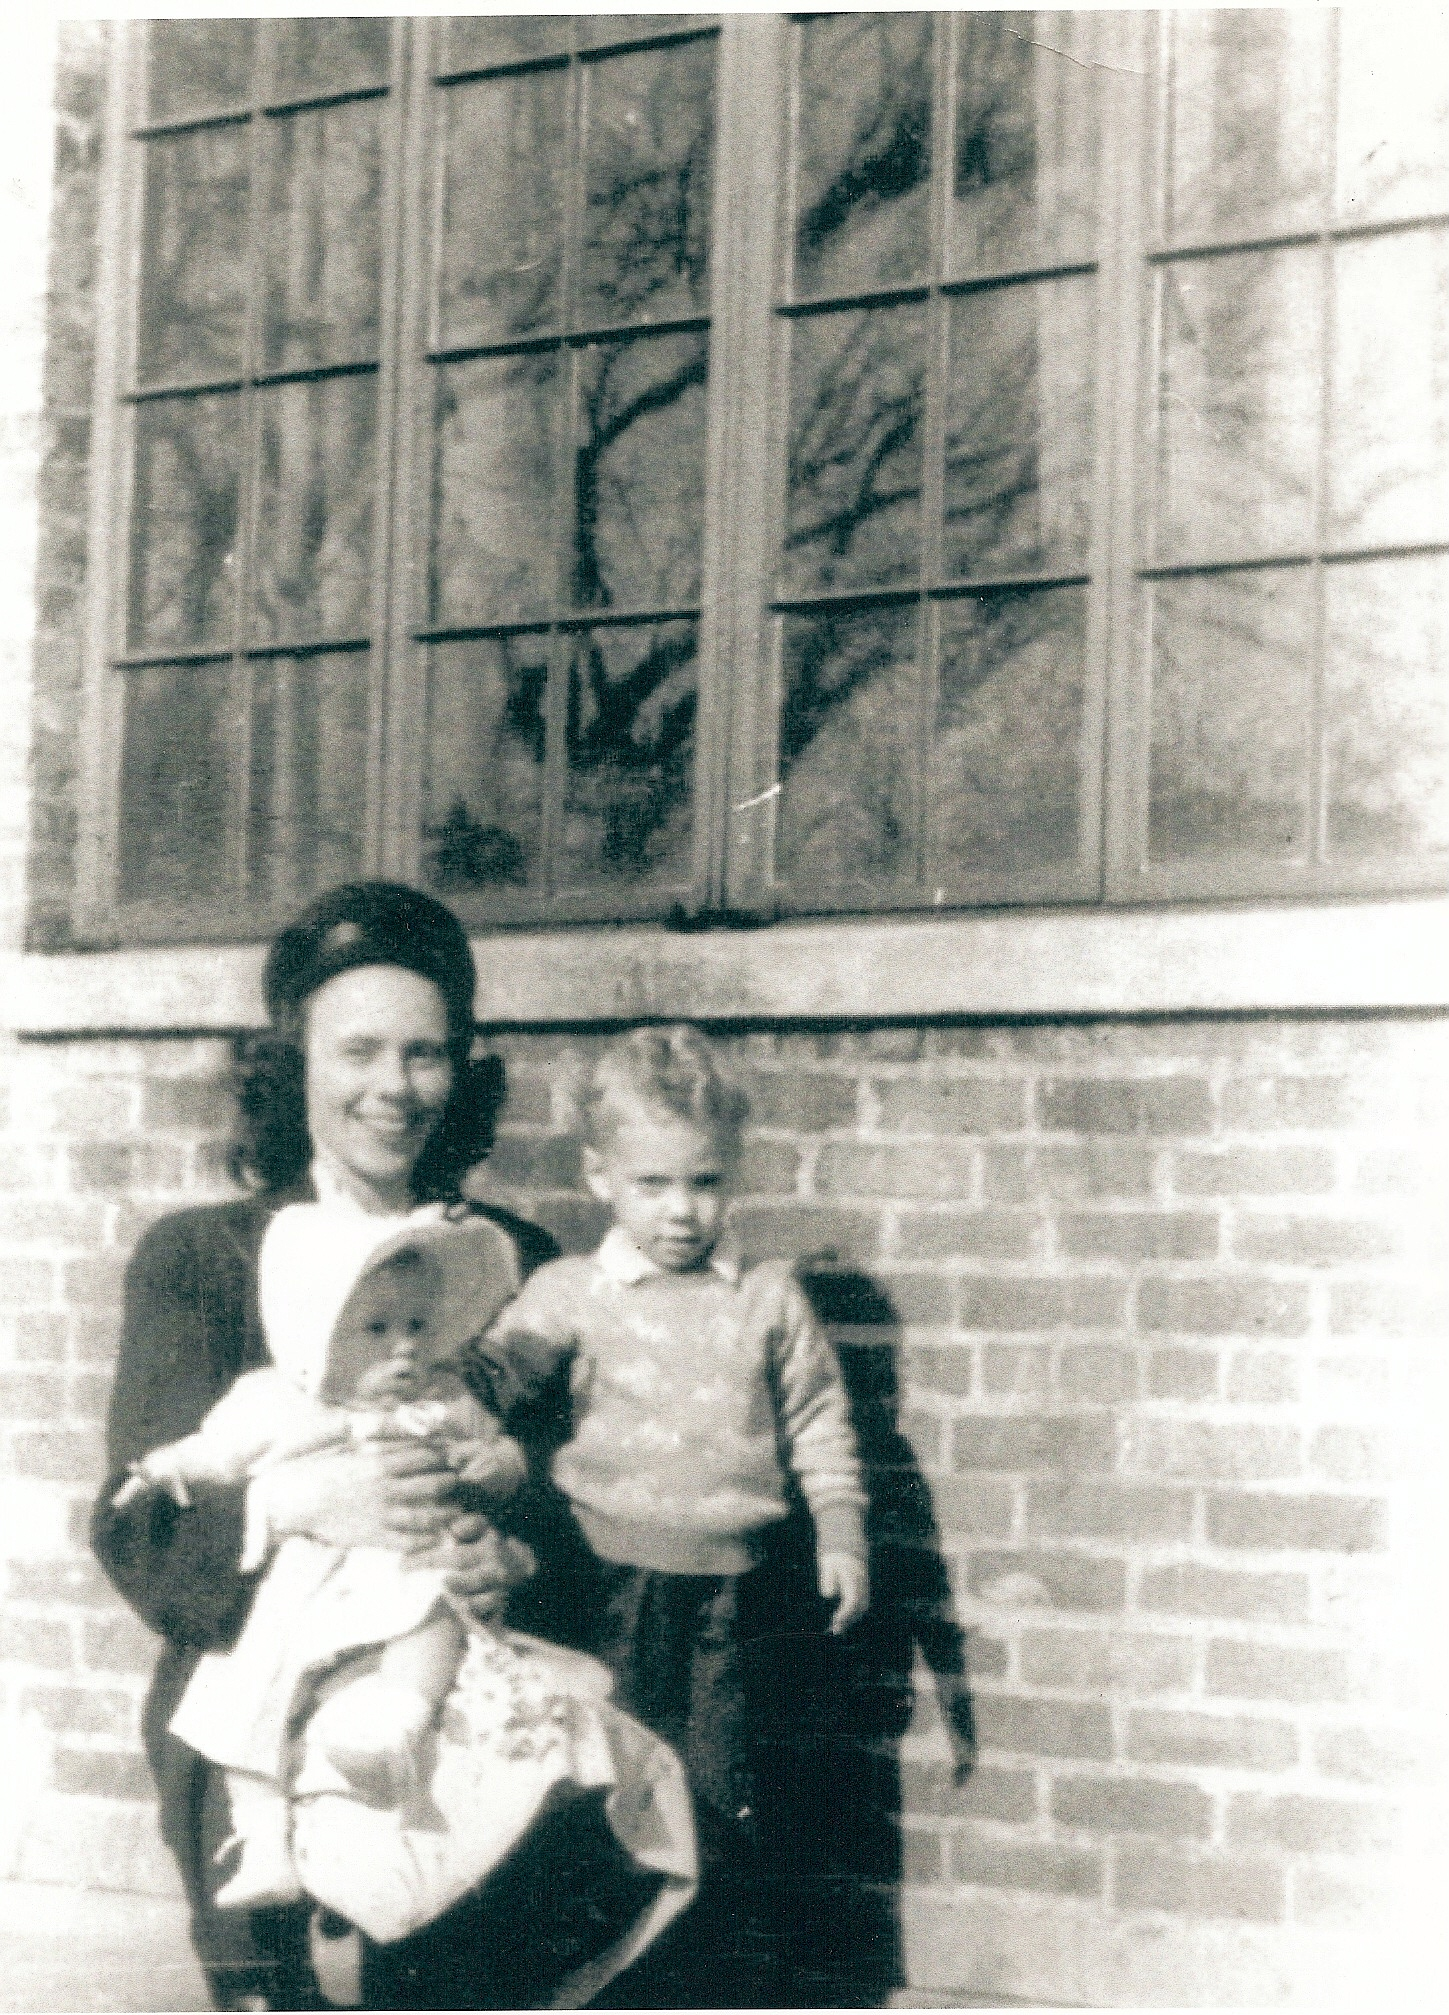 4-Frances, Patricia, Russell Bright, Providence, RI 1947